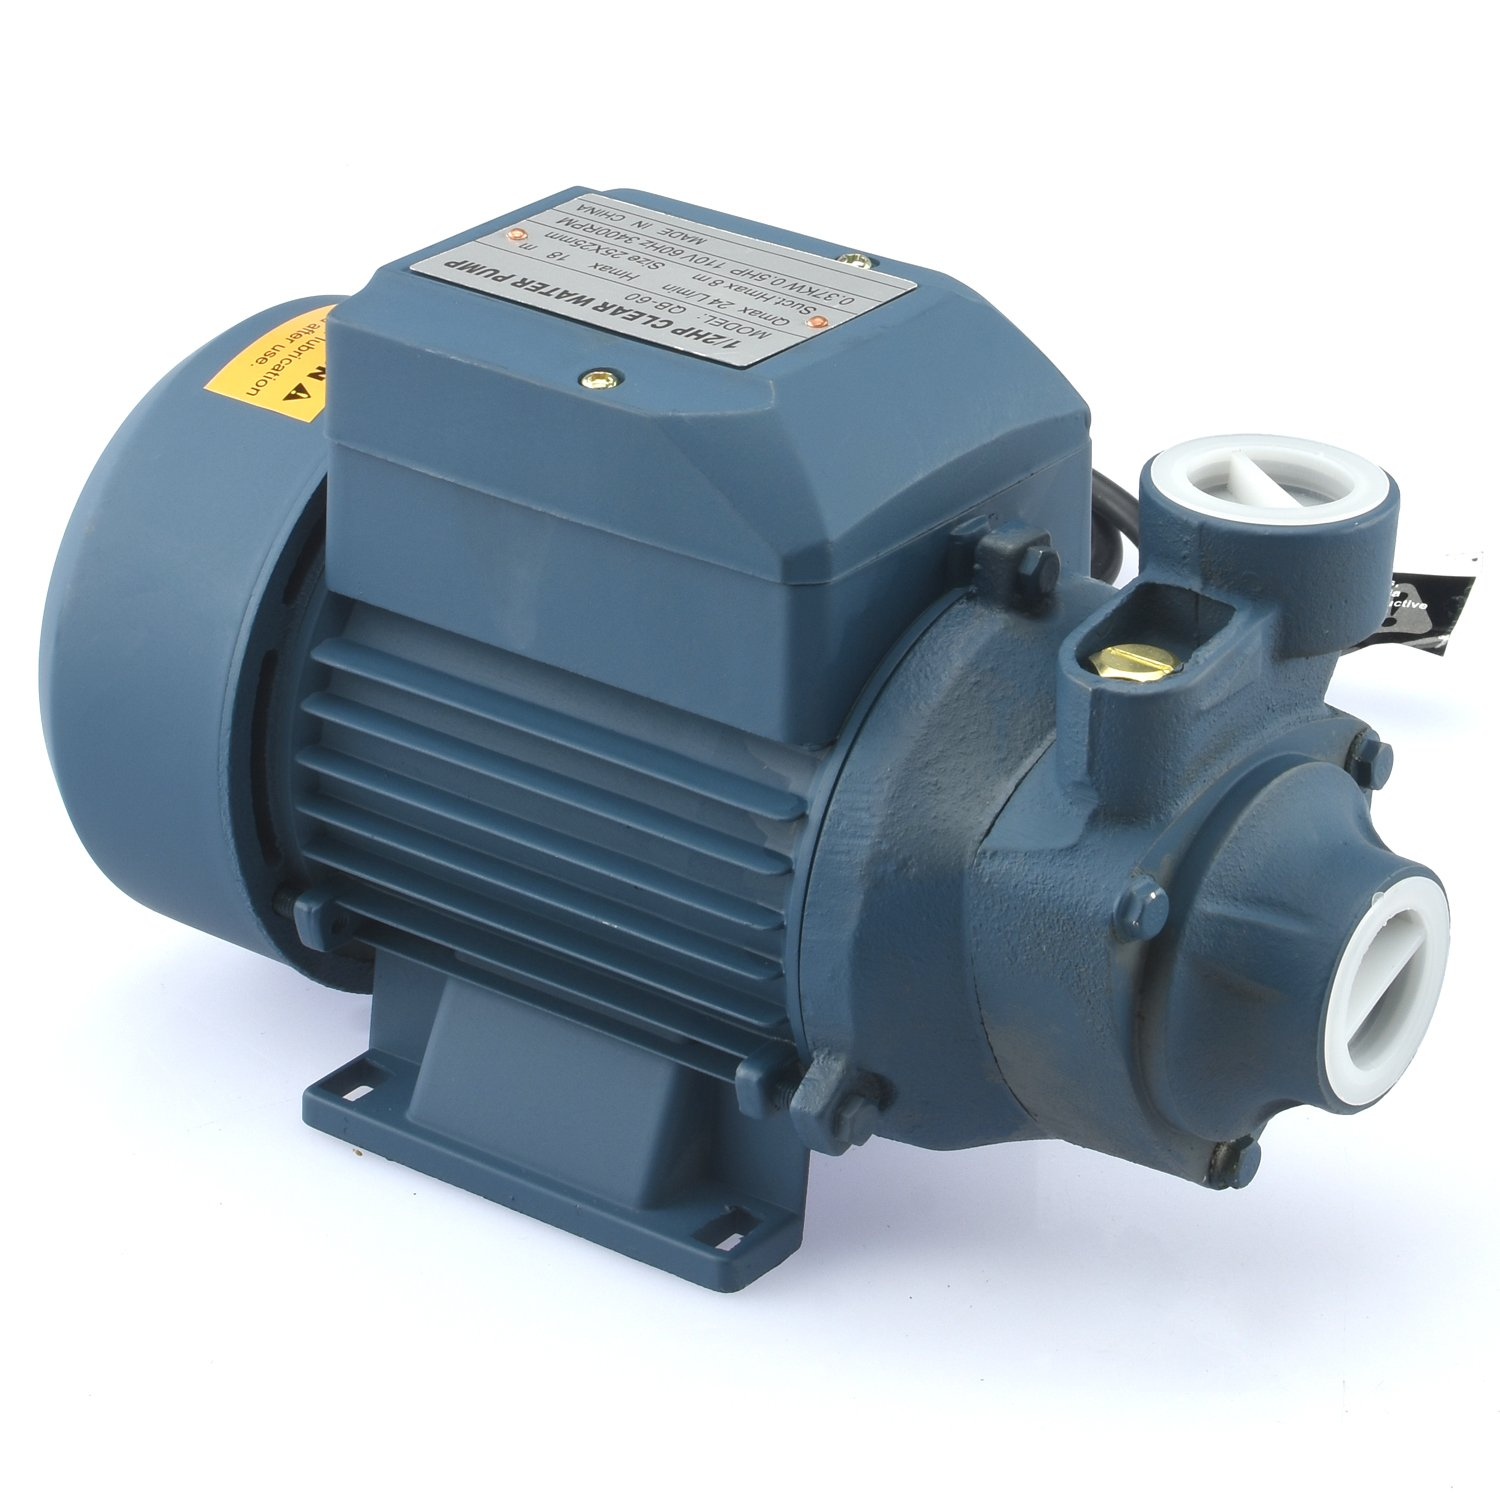 Tooluxe 50635 Electric Centrifugal Clear Water Pump, 0.5 HP | Pools, Ponds, Irrigation, Garden, Sprinkling | 380 GPH by Tooluxe (Image #1)